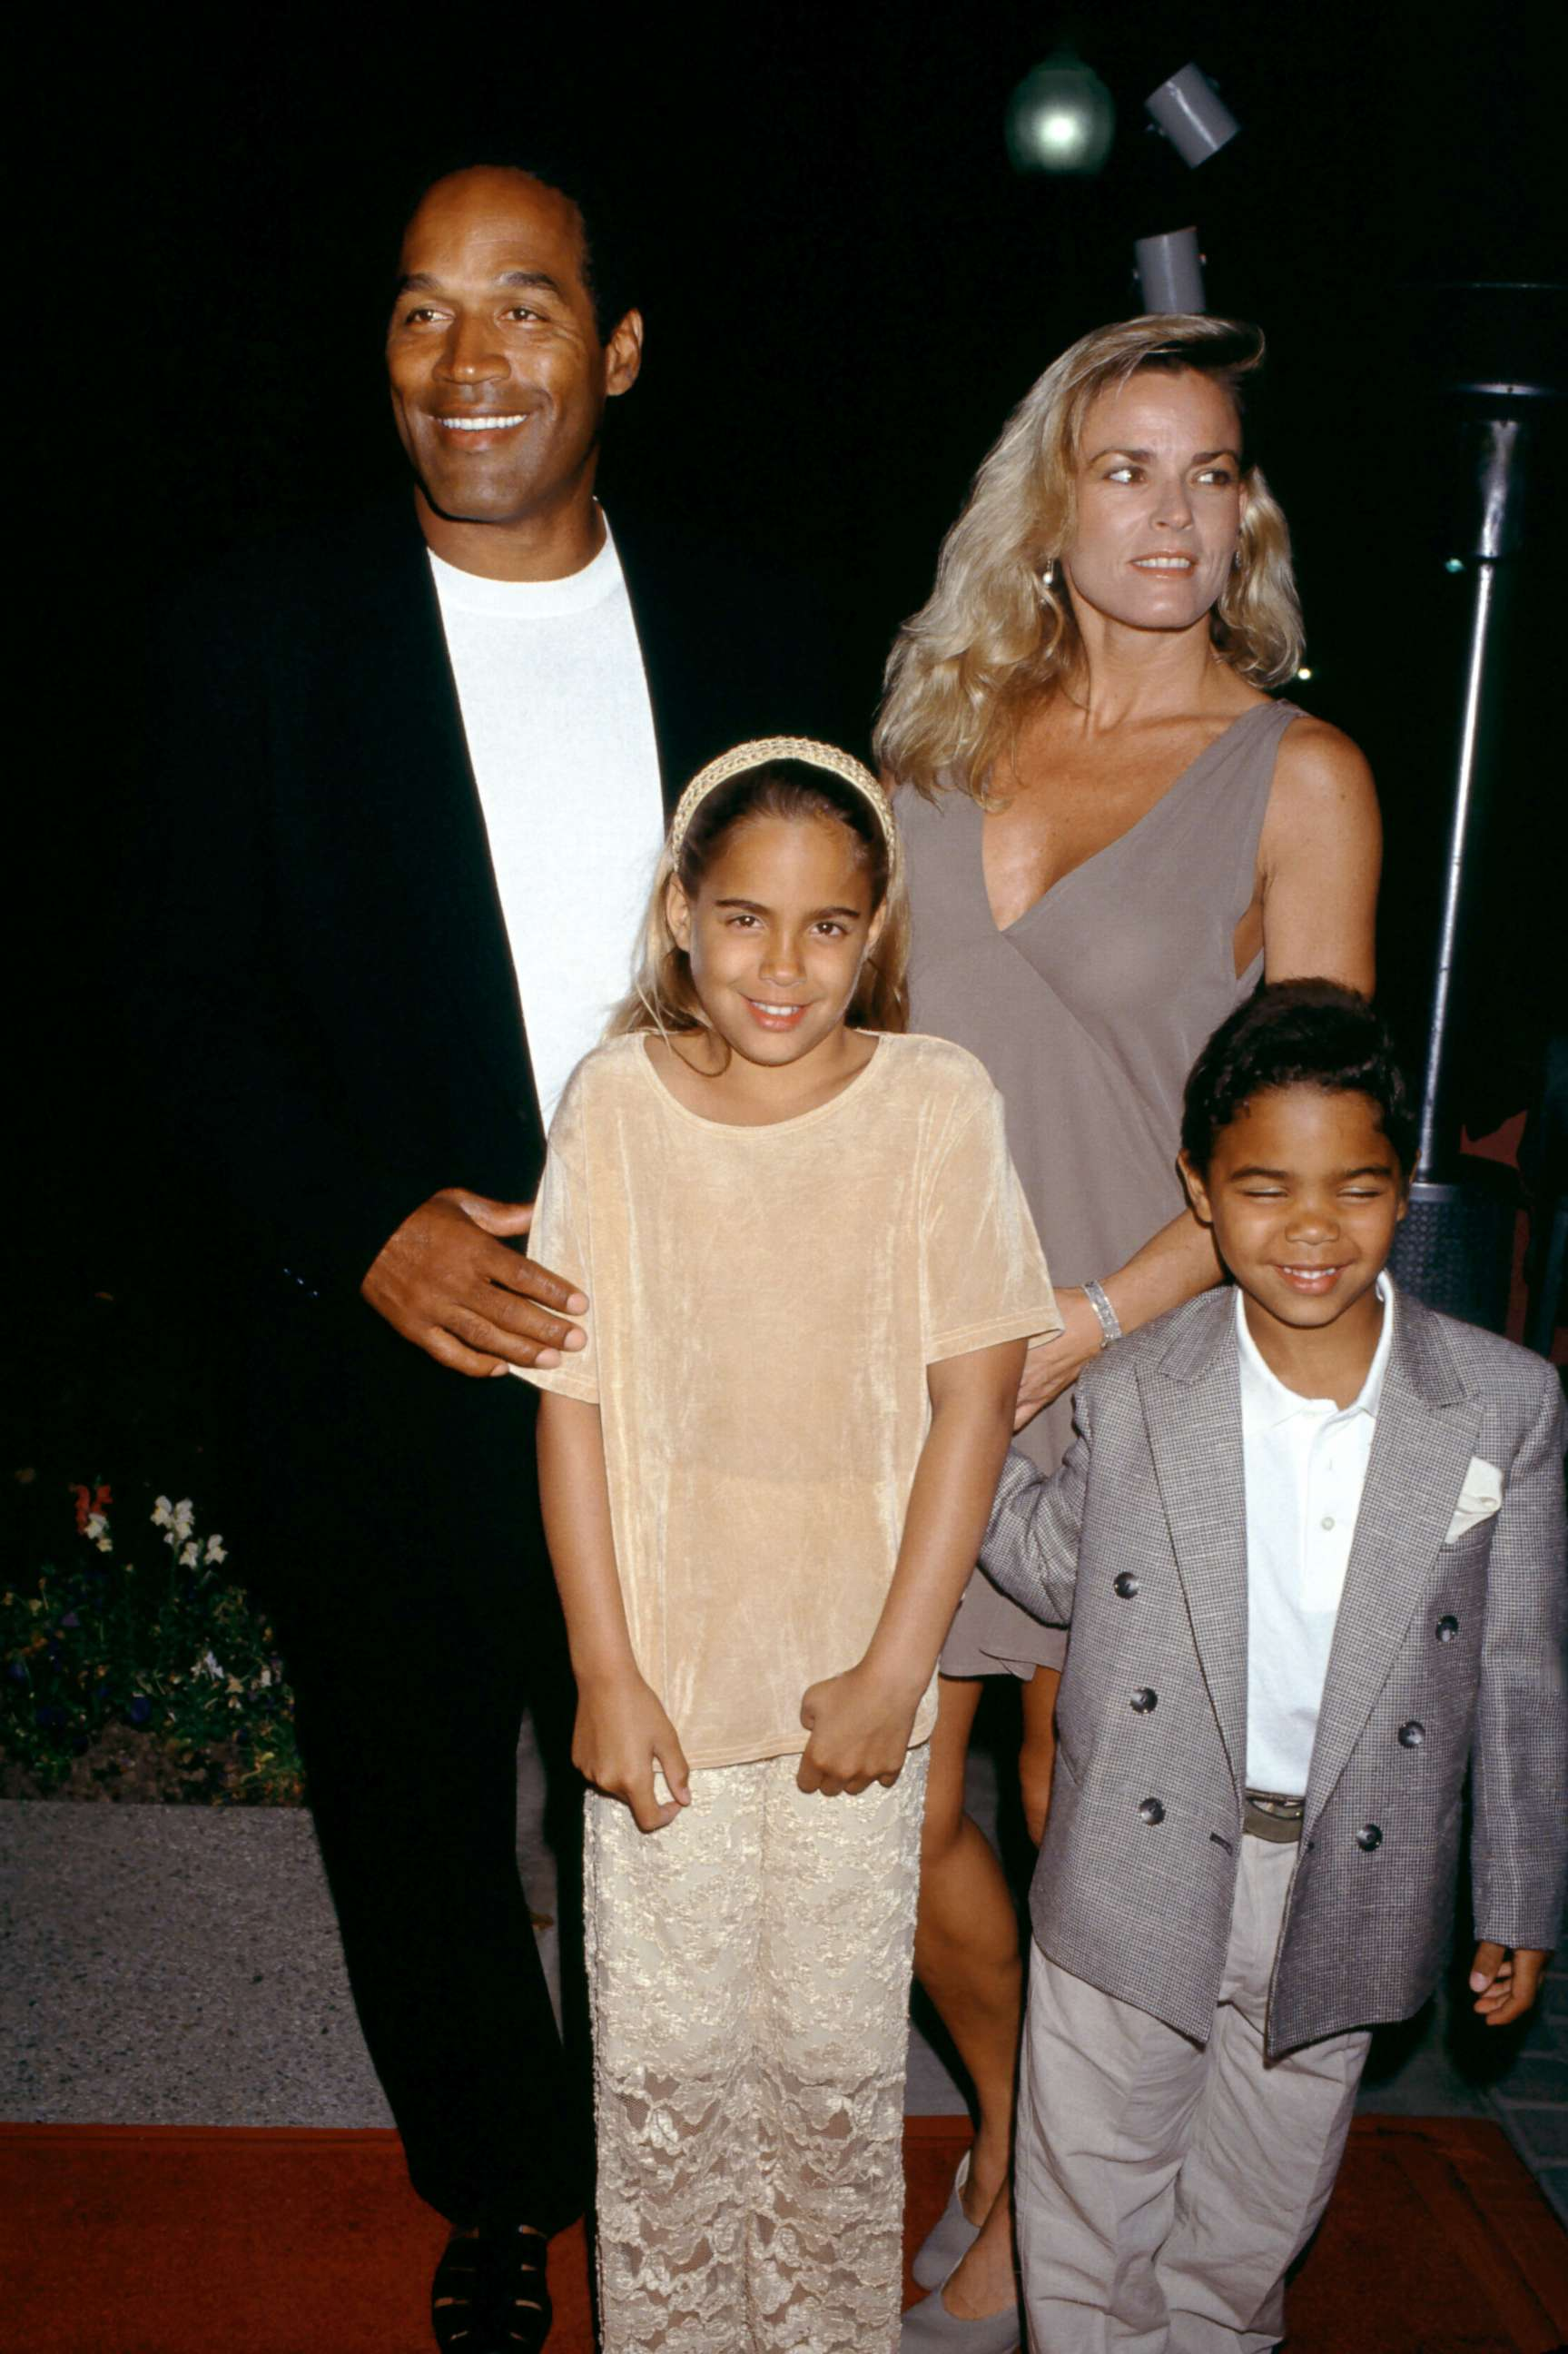 Nicole Brown and O.J. Simpson were once like any other